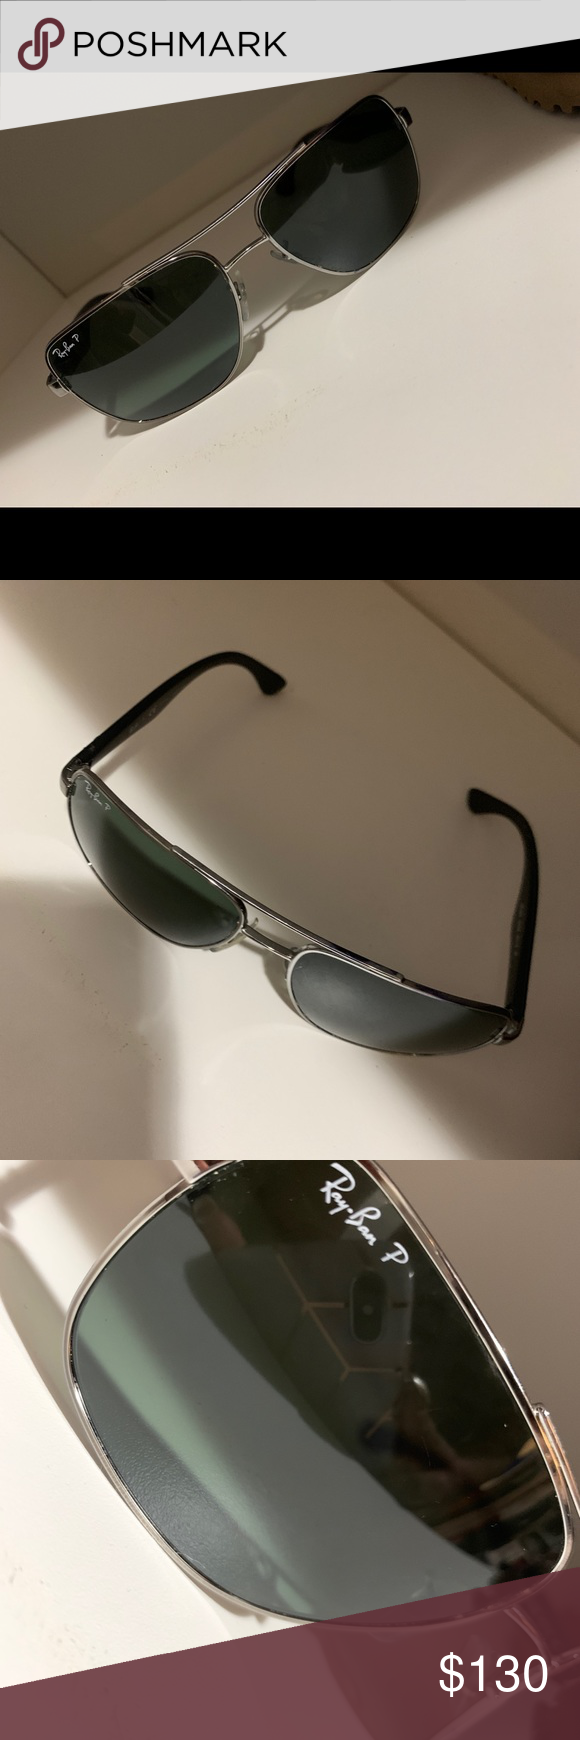 ca6a381c44e60 ... official store ray ban sunglasses ray ban rb3483 frame color gunmetal  lens color crystal green 0e9f2